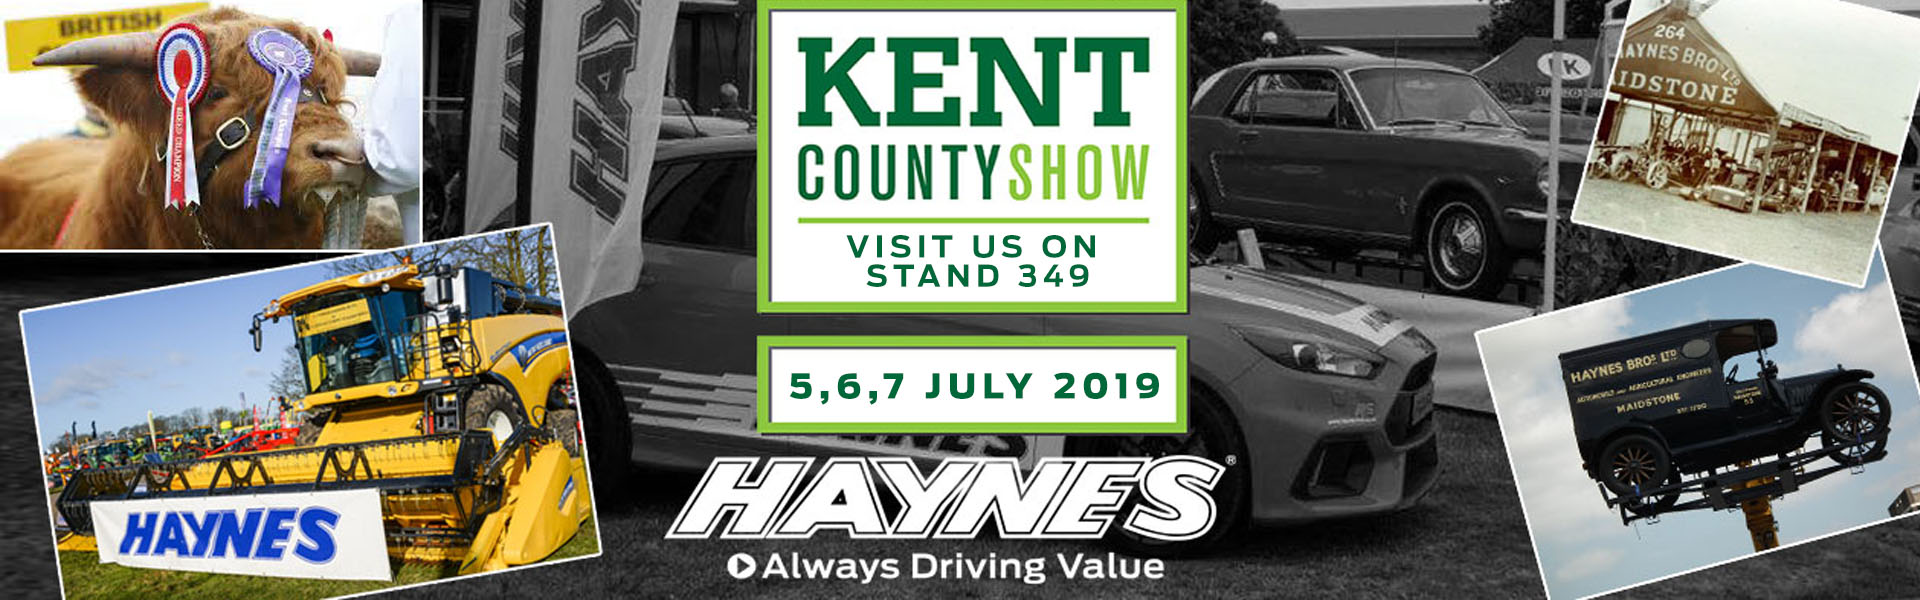 County-show-2019-Banner